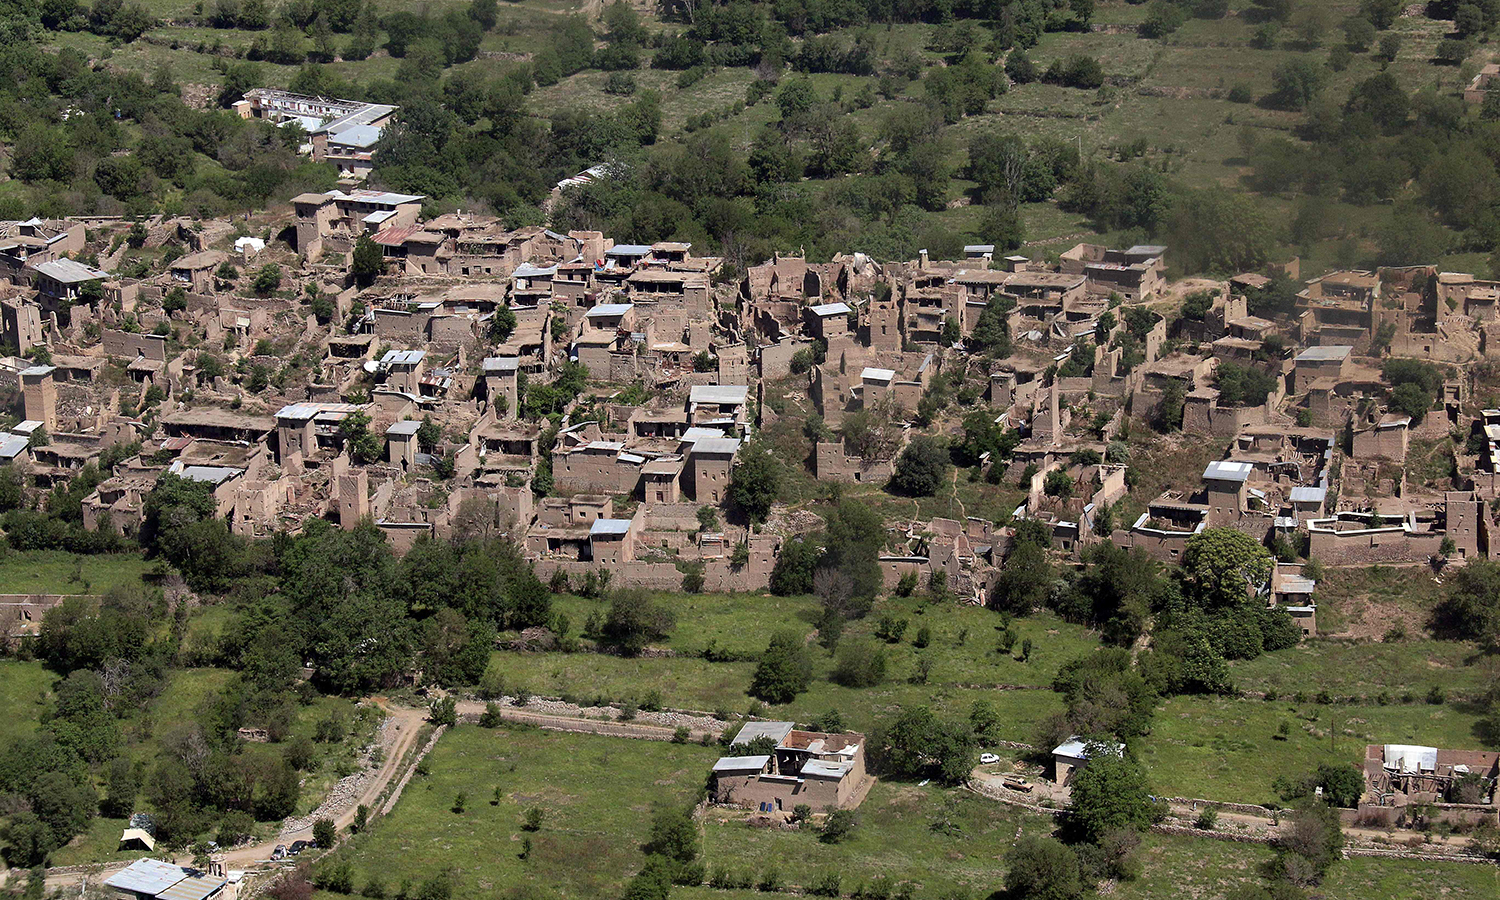 The Khyber Pakhtunkhwa government has approved a Rs2.18 billion worth of project to develop and revitalise economic infrastructure of South Waziristan tribal district over a period of three years. — AFP/File